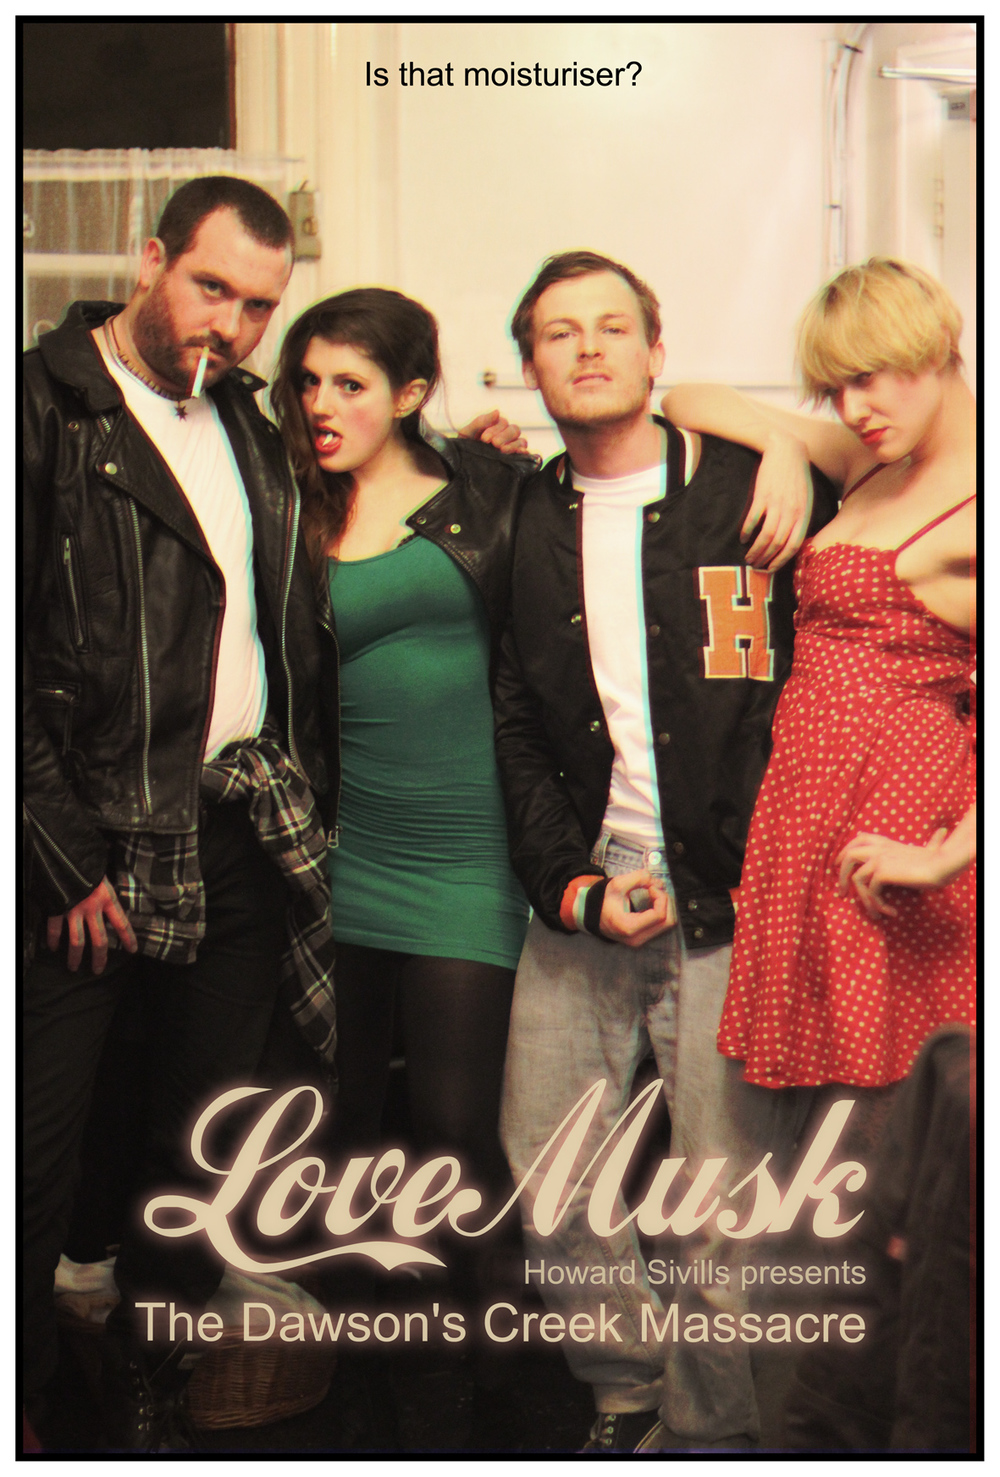 Poster for the troubling performance work 'Love Musk' by Howard Sivills (second from right)